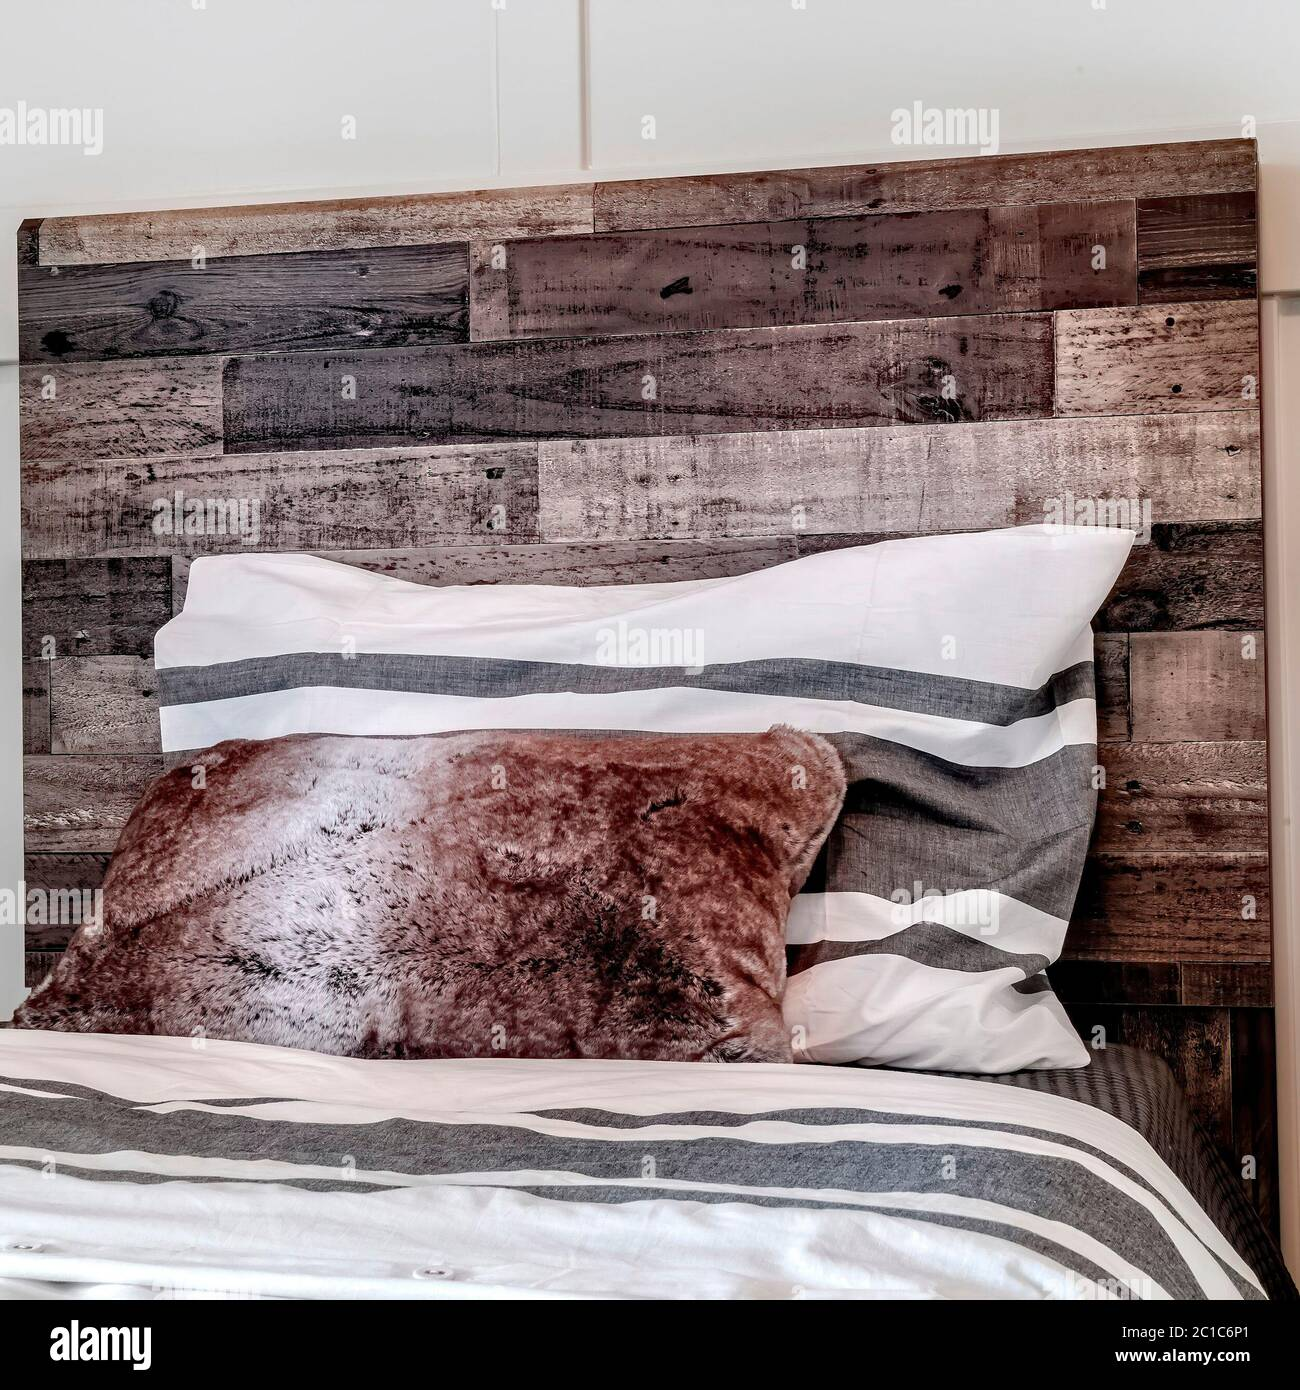 https www alamy com square frame bed with pillows against decorative wooden headboard against white panel wall image362301129 html